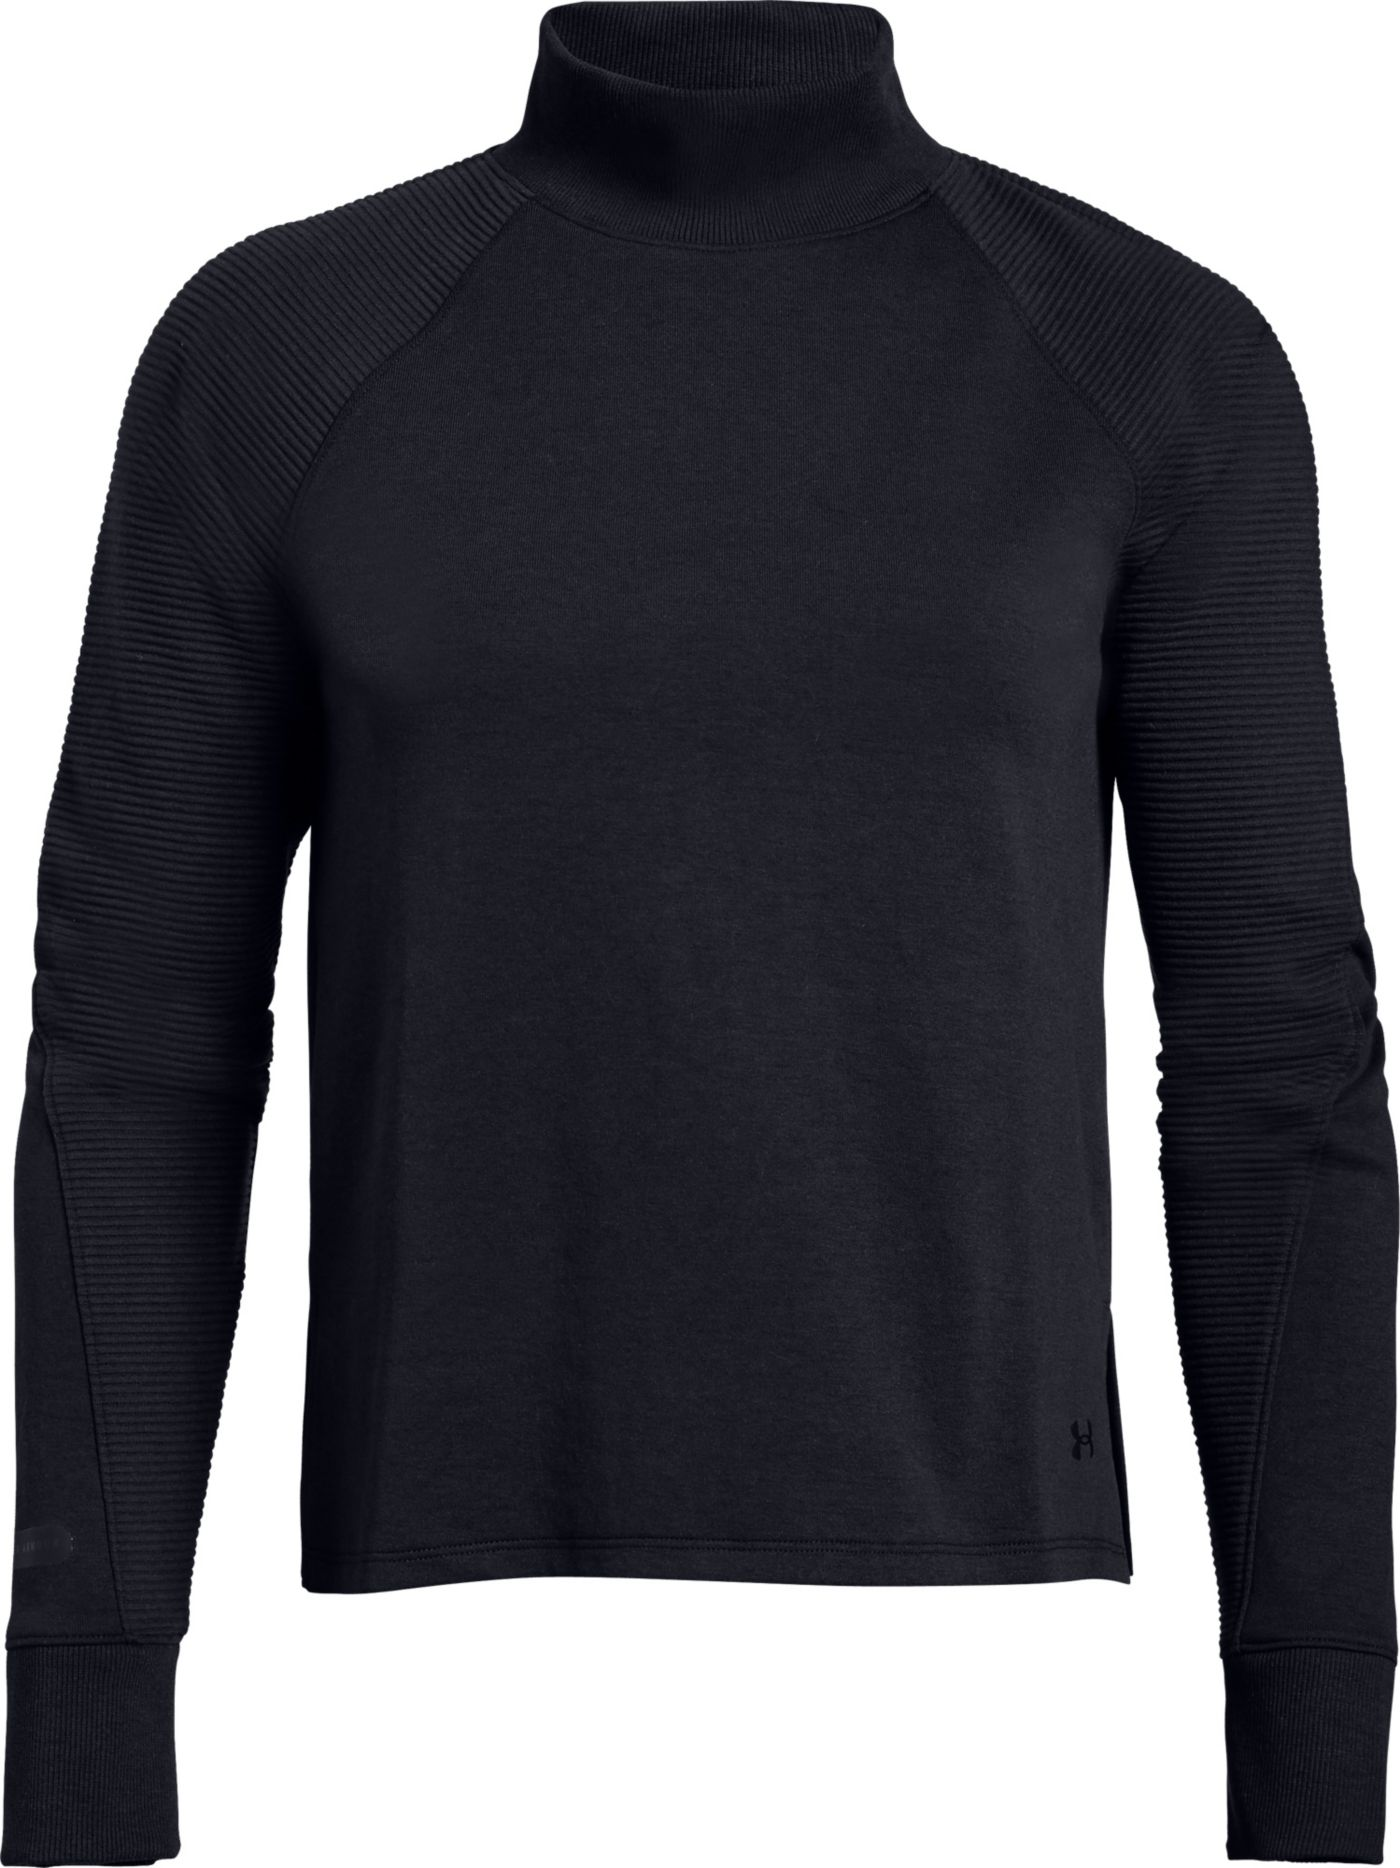 Under Armour Women's Unstoppable Double Knit Mock Neck Long Sleeve Shirt